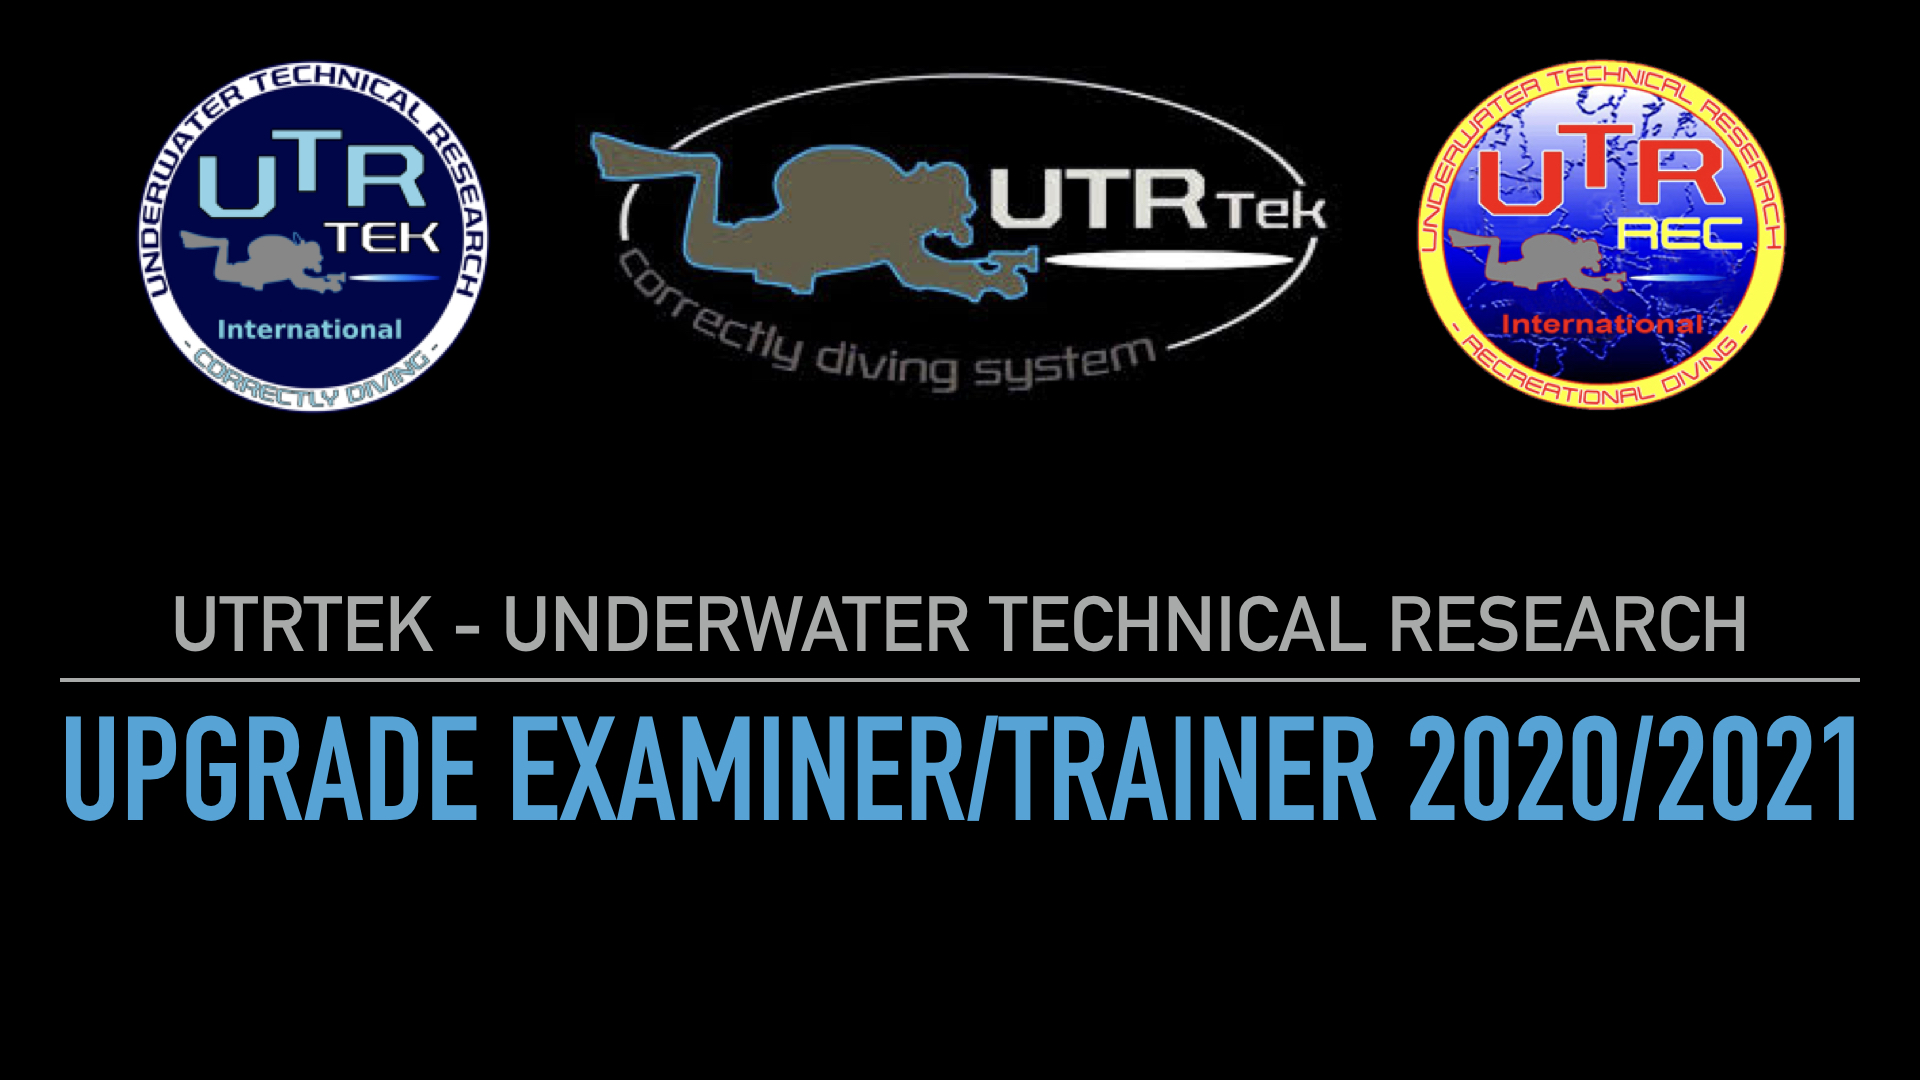 UPGRADE EXAMINER/TRAINER 2020/2021